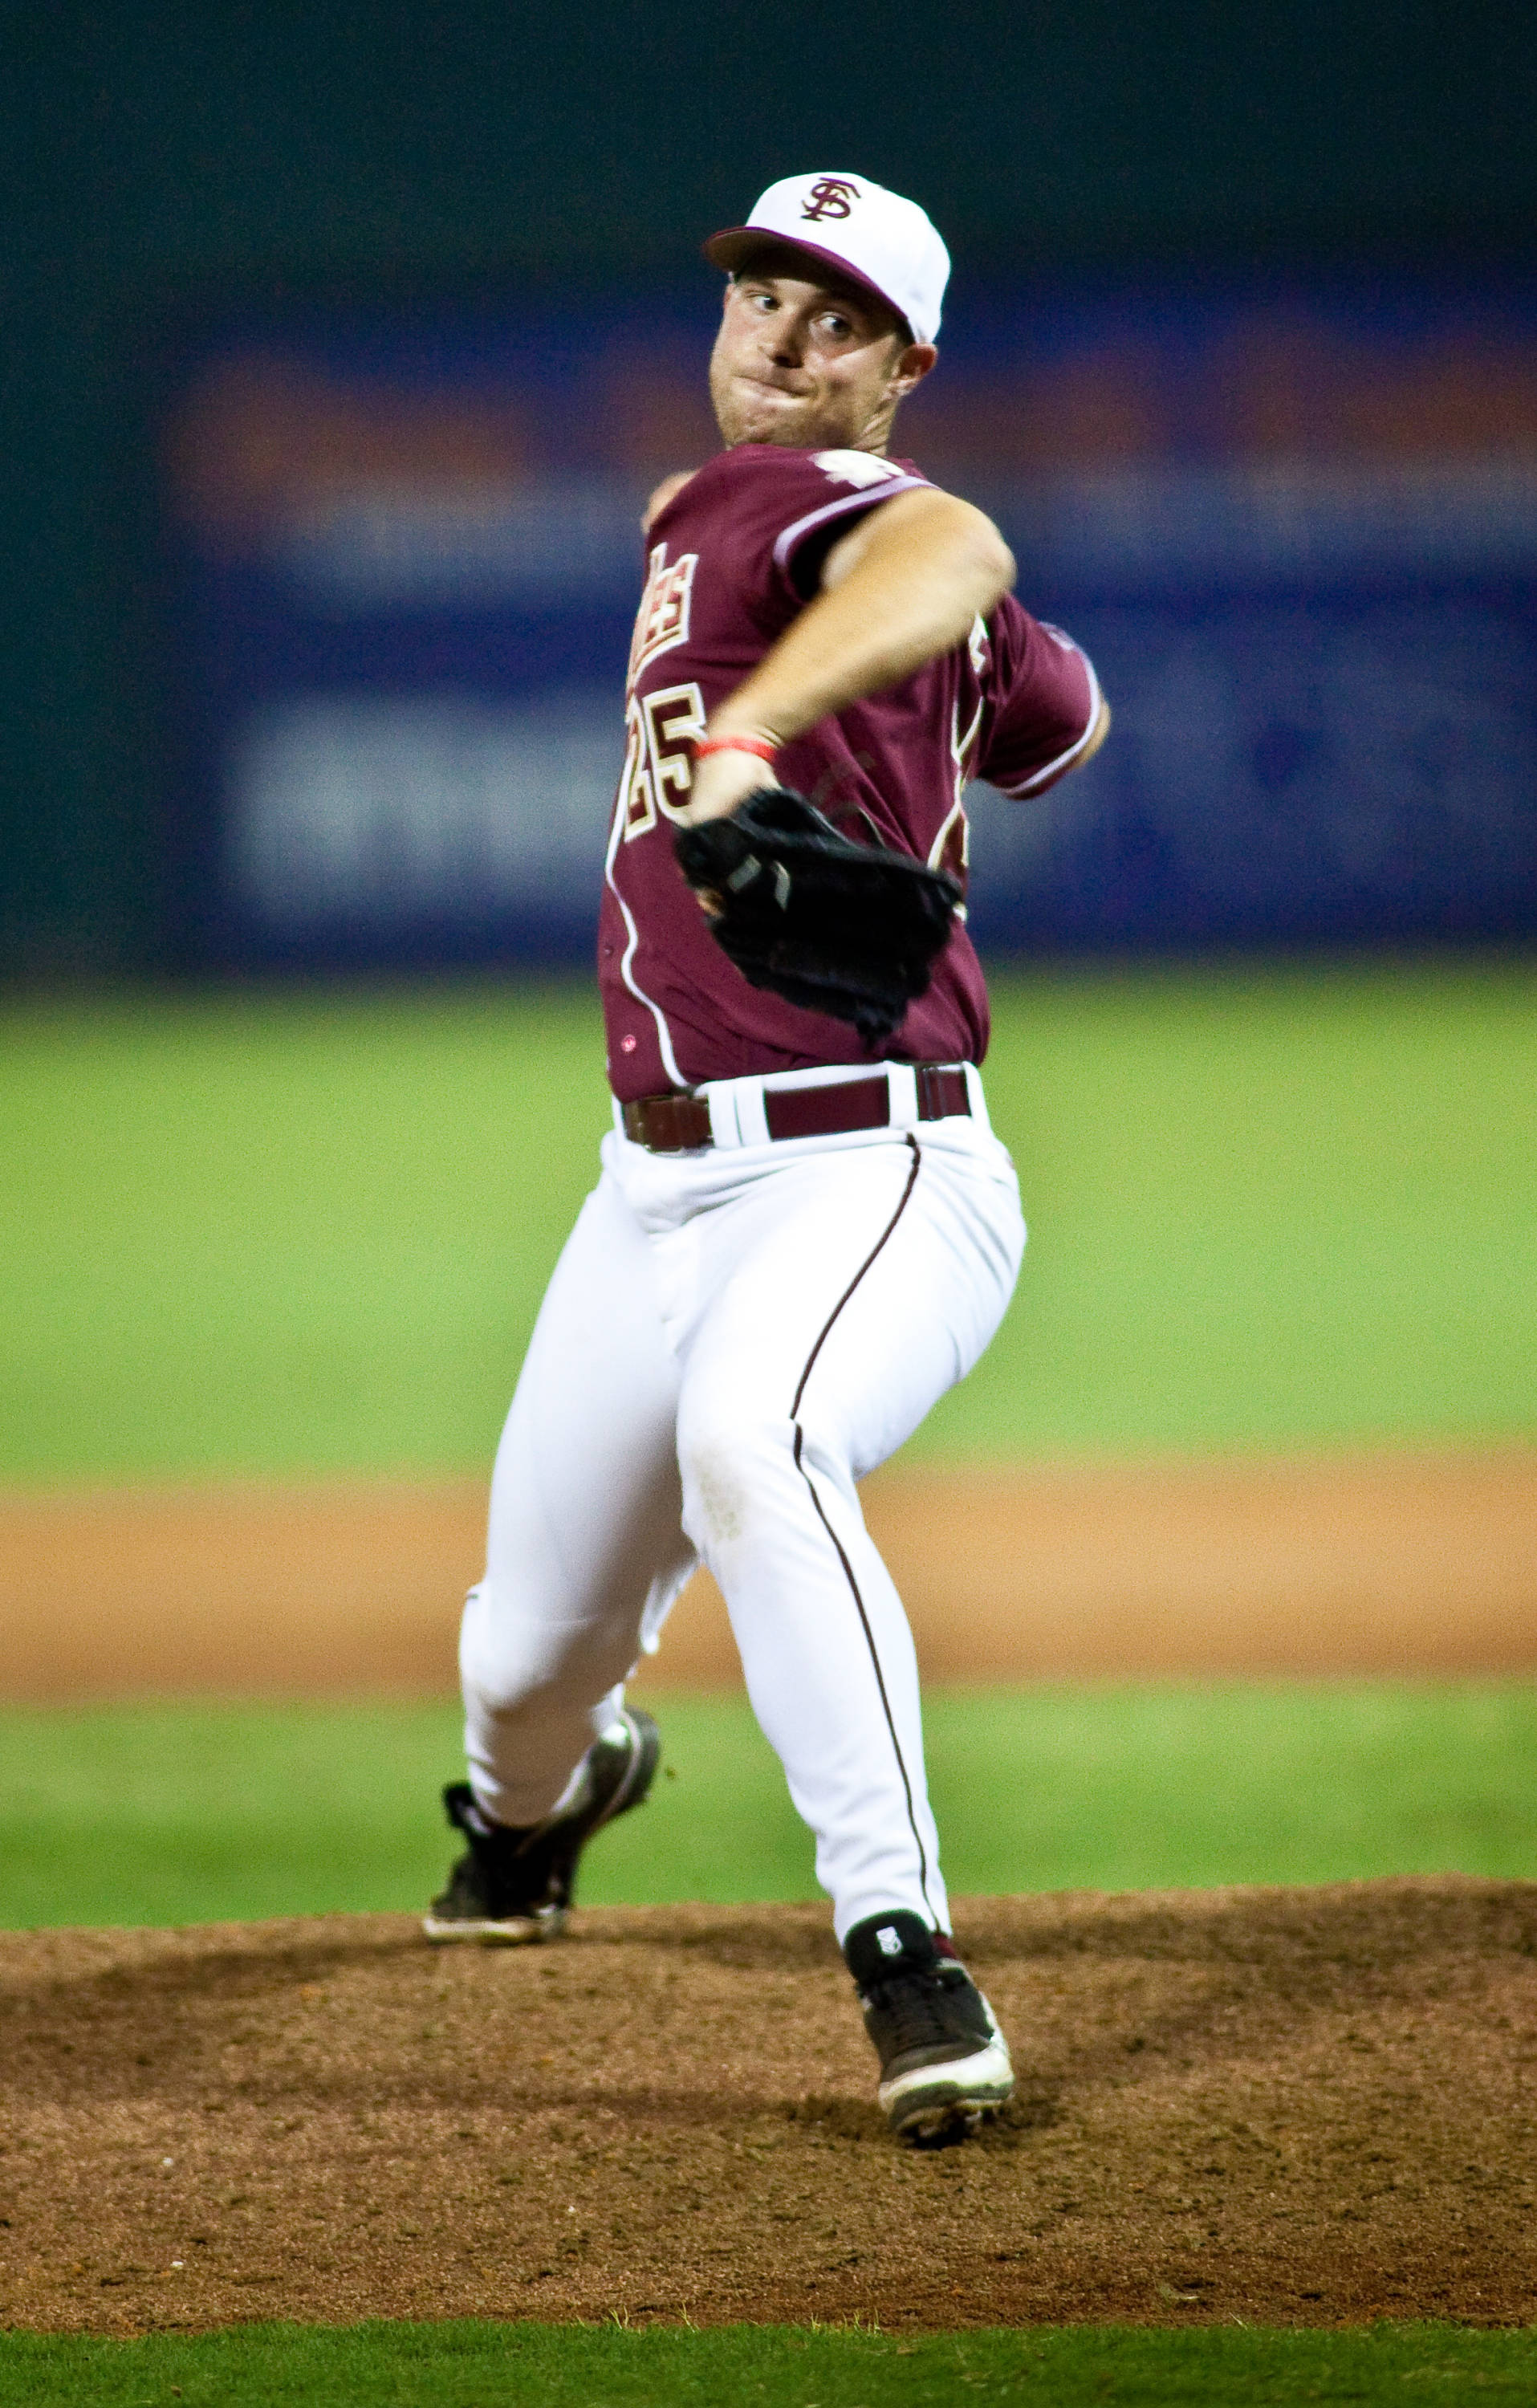 Mike McGee (25) shuts the door on the Gators in the 9th inning